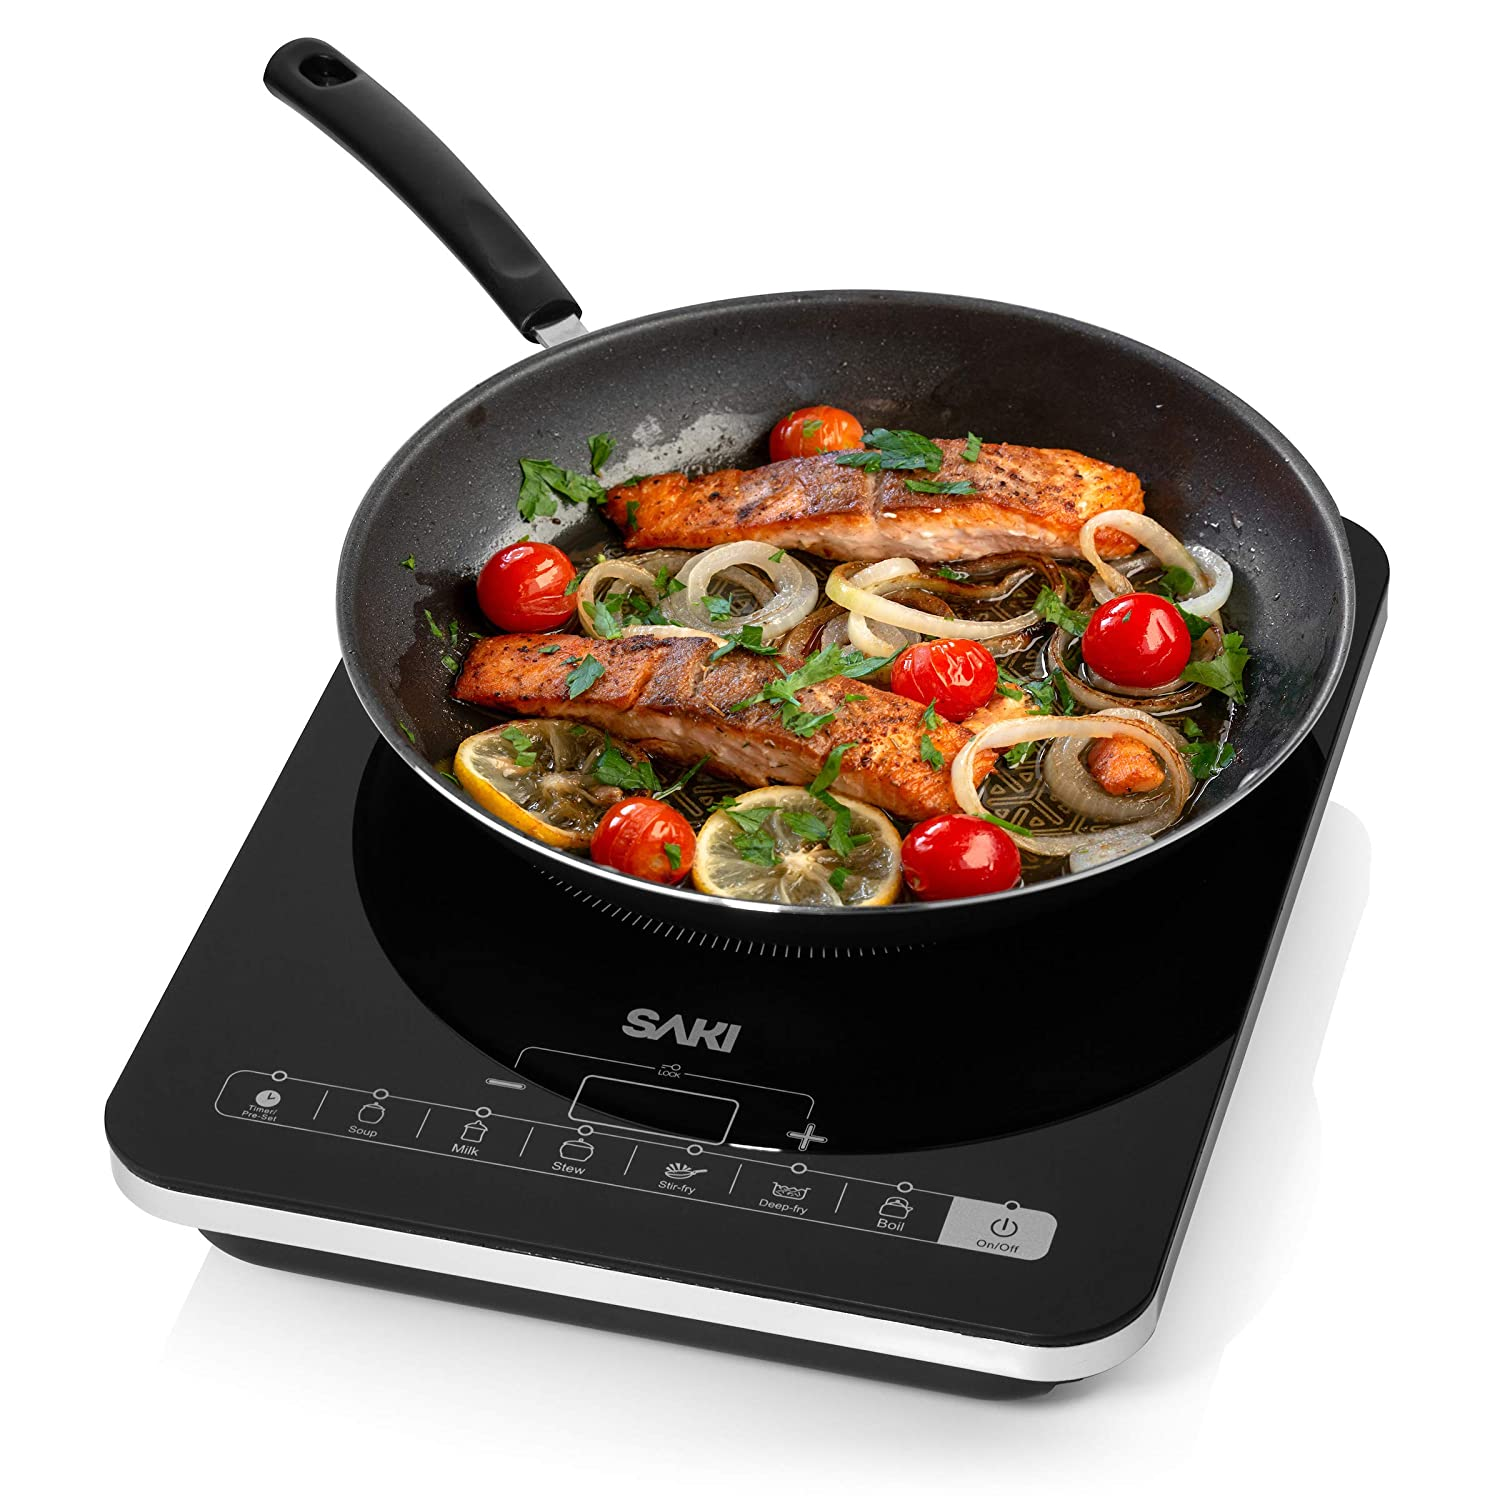 Saki Induction Cooker – 1800W Portable Induction Cooktop Countertop Burner Electric Stovetop, 8-level power control, Touch Sensor, Kids Safety Lock, Timer, for stainless steel Pot & Pan